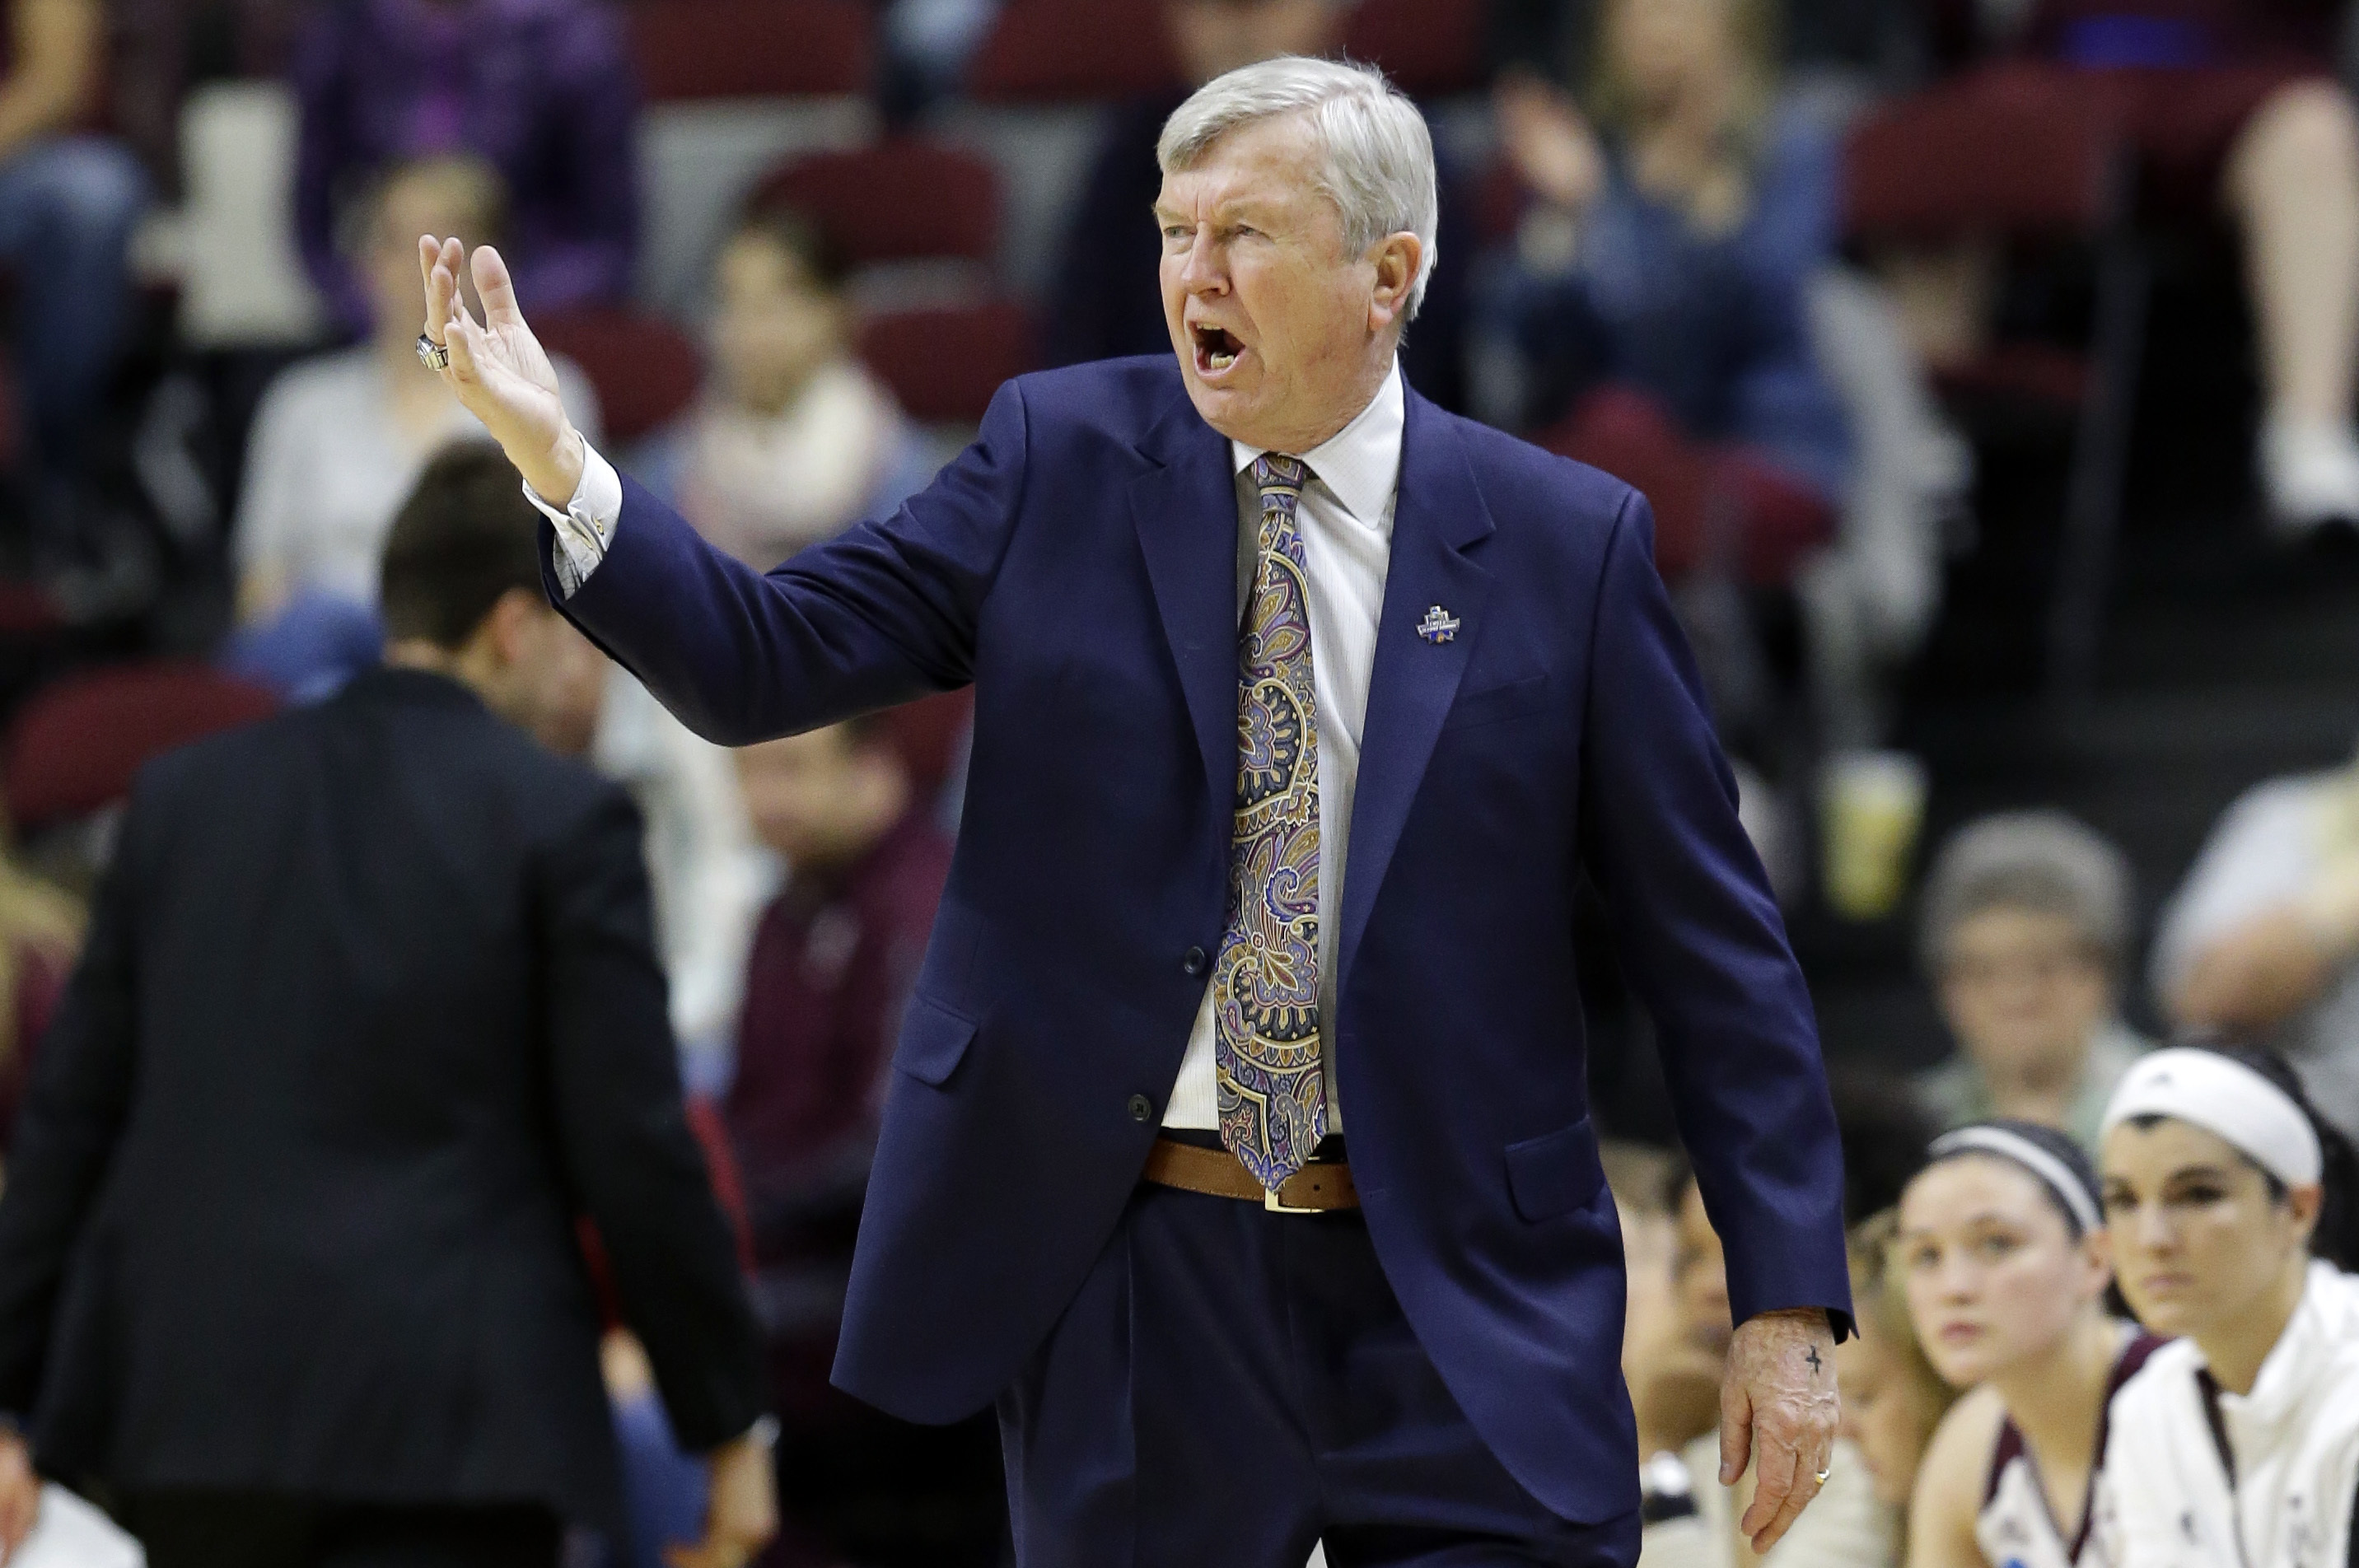 Texas A&M head coach Gary Blair directs his players during the first half of a college basketball game against Florida State in the second round of the NCAA tournament Monday, March 21, 2016, in College Station, Texas. (AP Photo/Pat Sullivan)